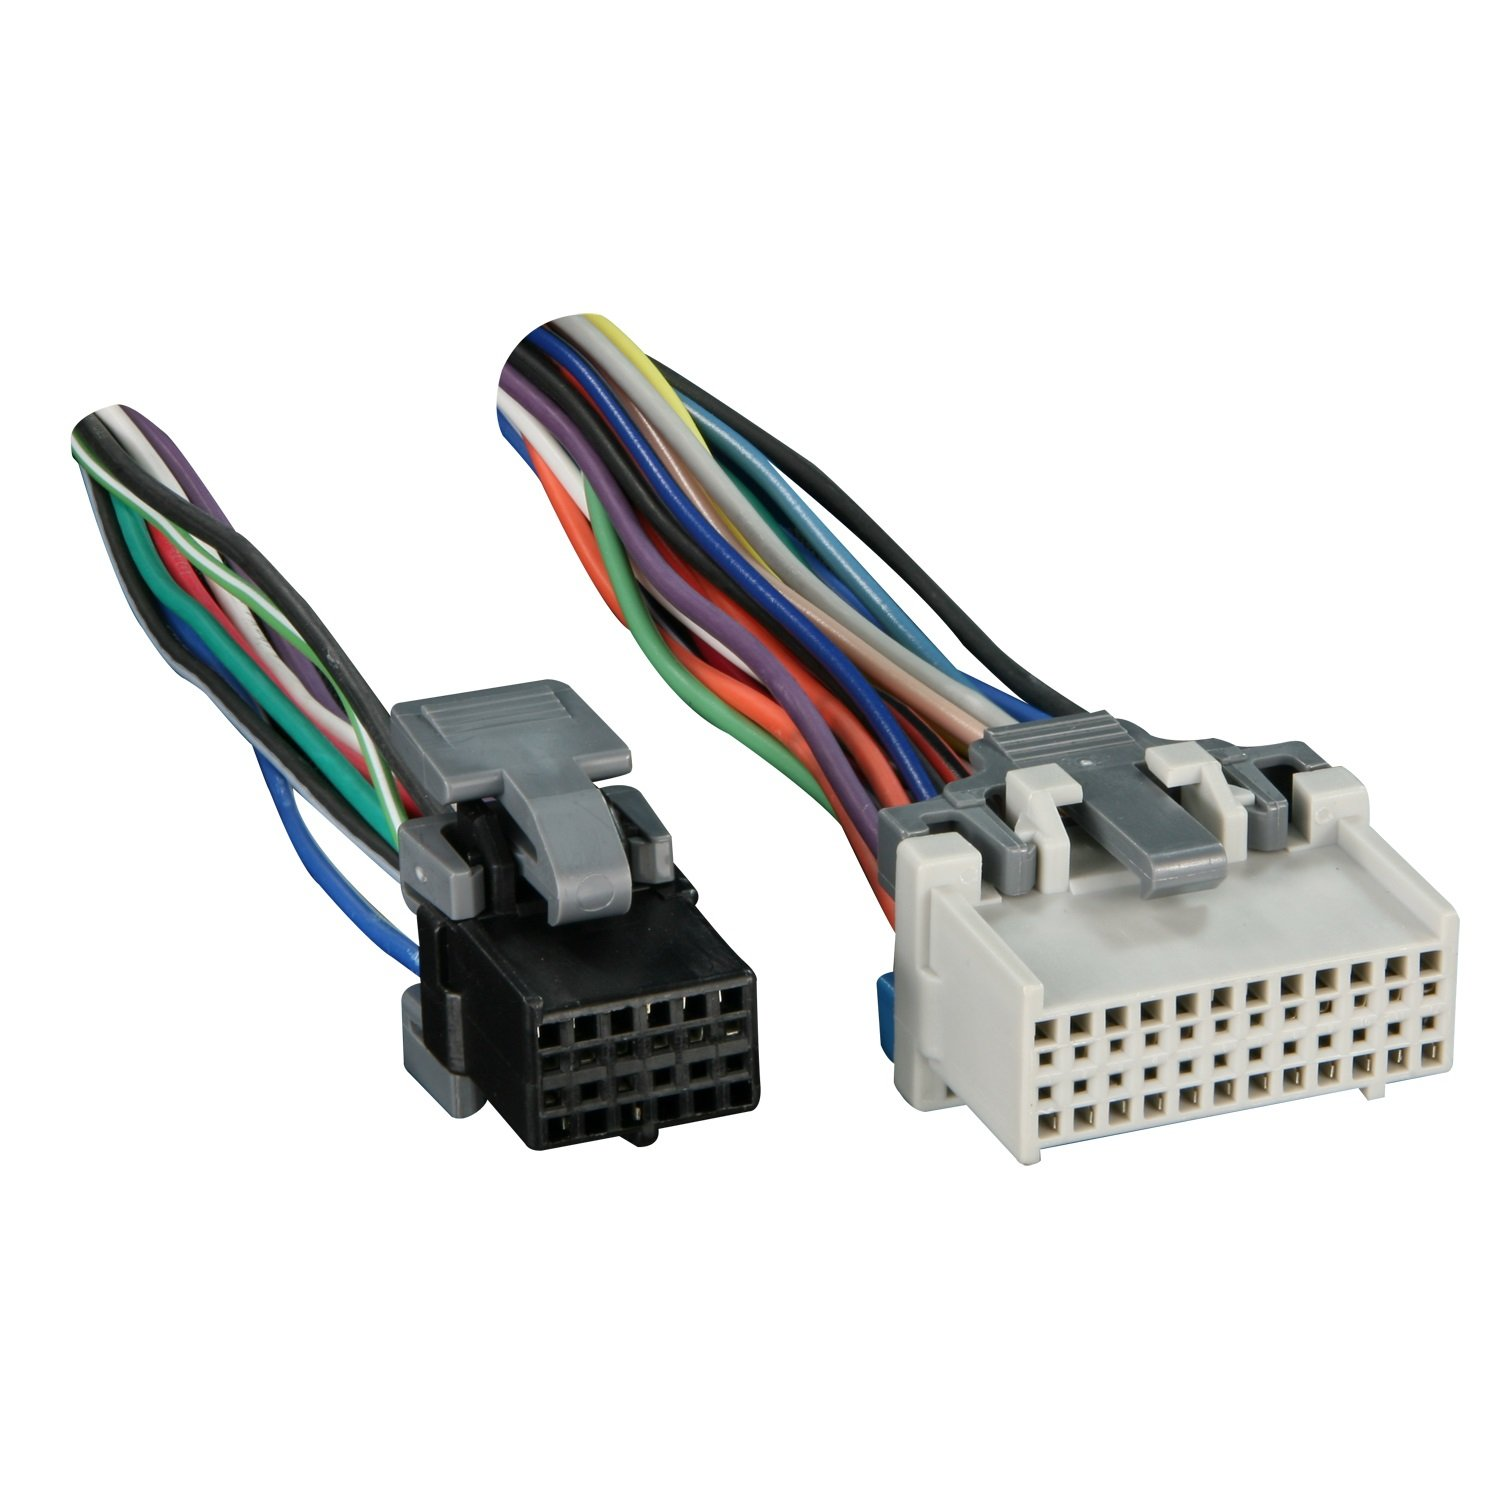 711log4bdML._SL1500_ amazon com metra turbowires 71 2003 1 wiring harness car electronics GM Wiring Color Codes at bakdesigns.co